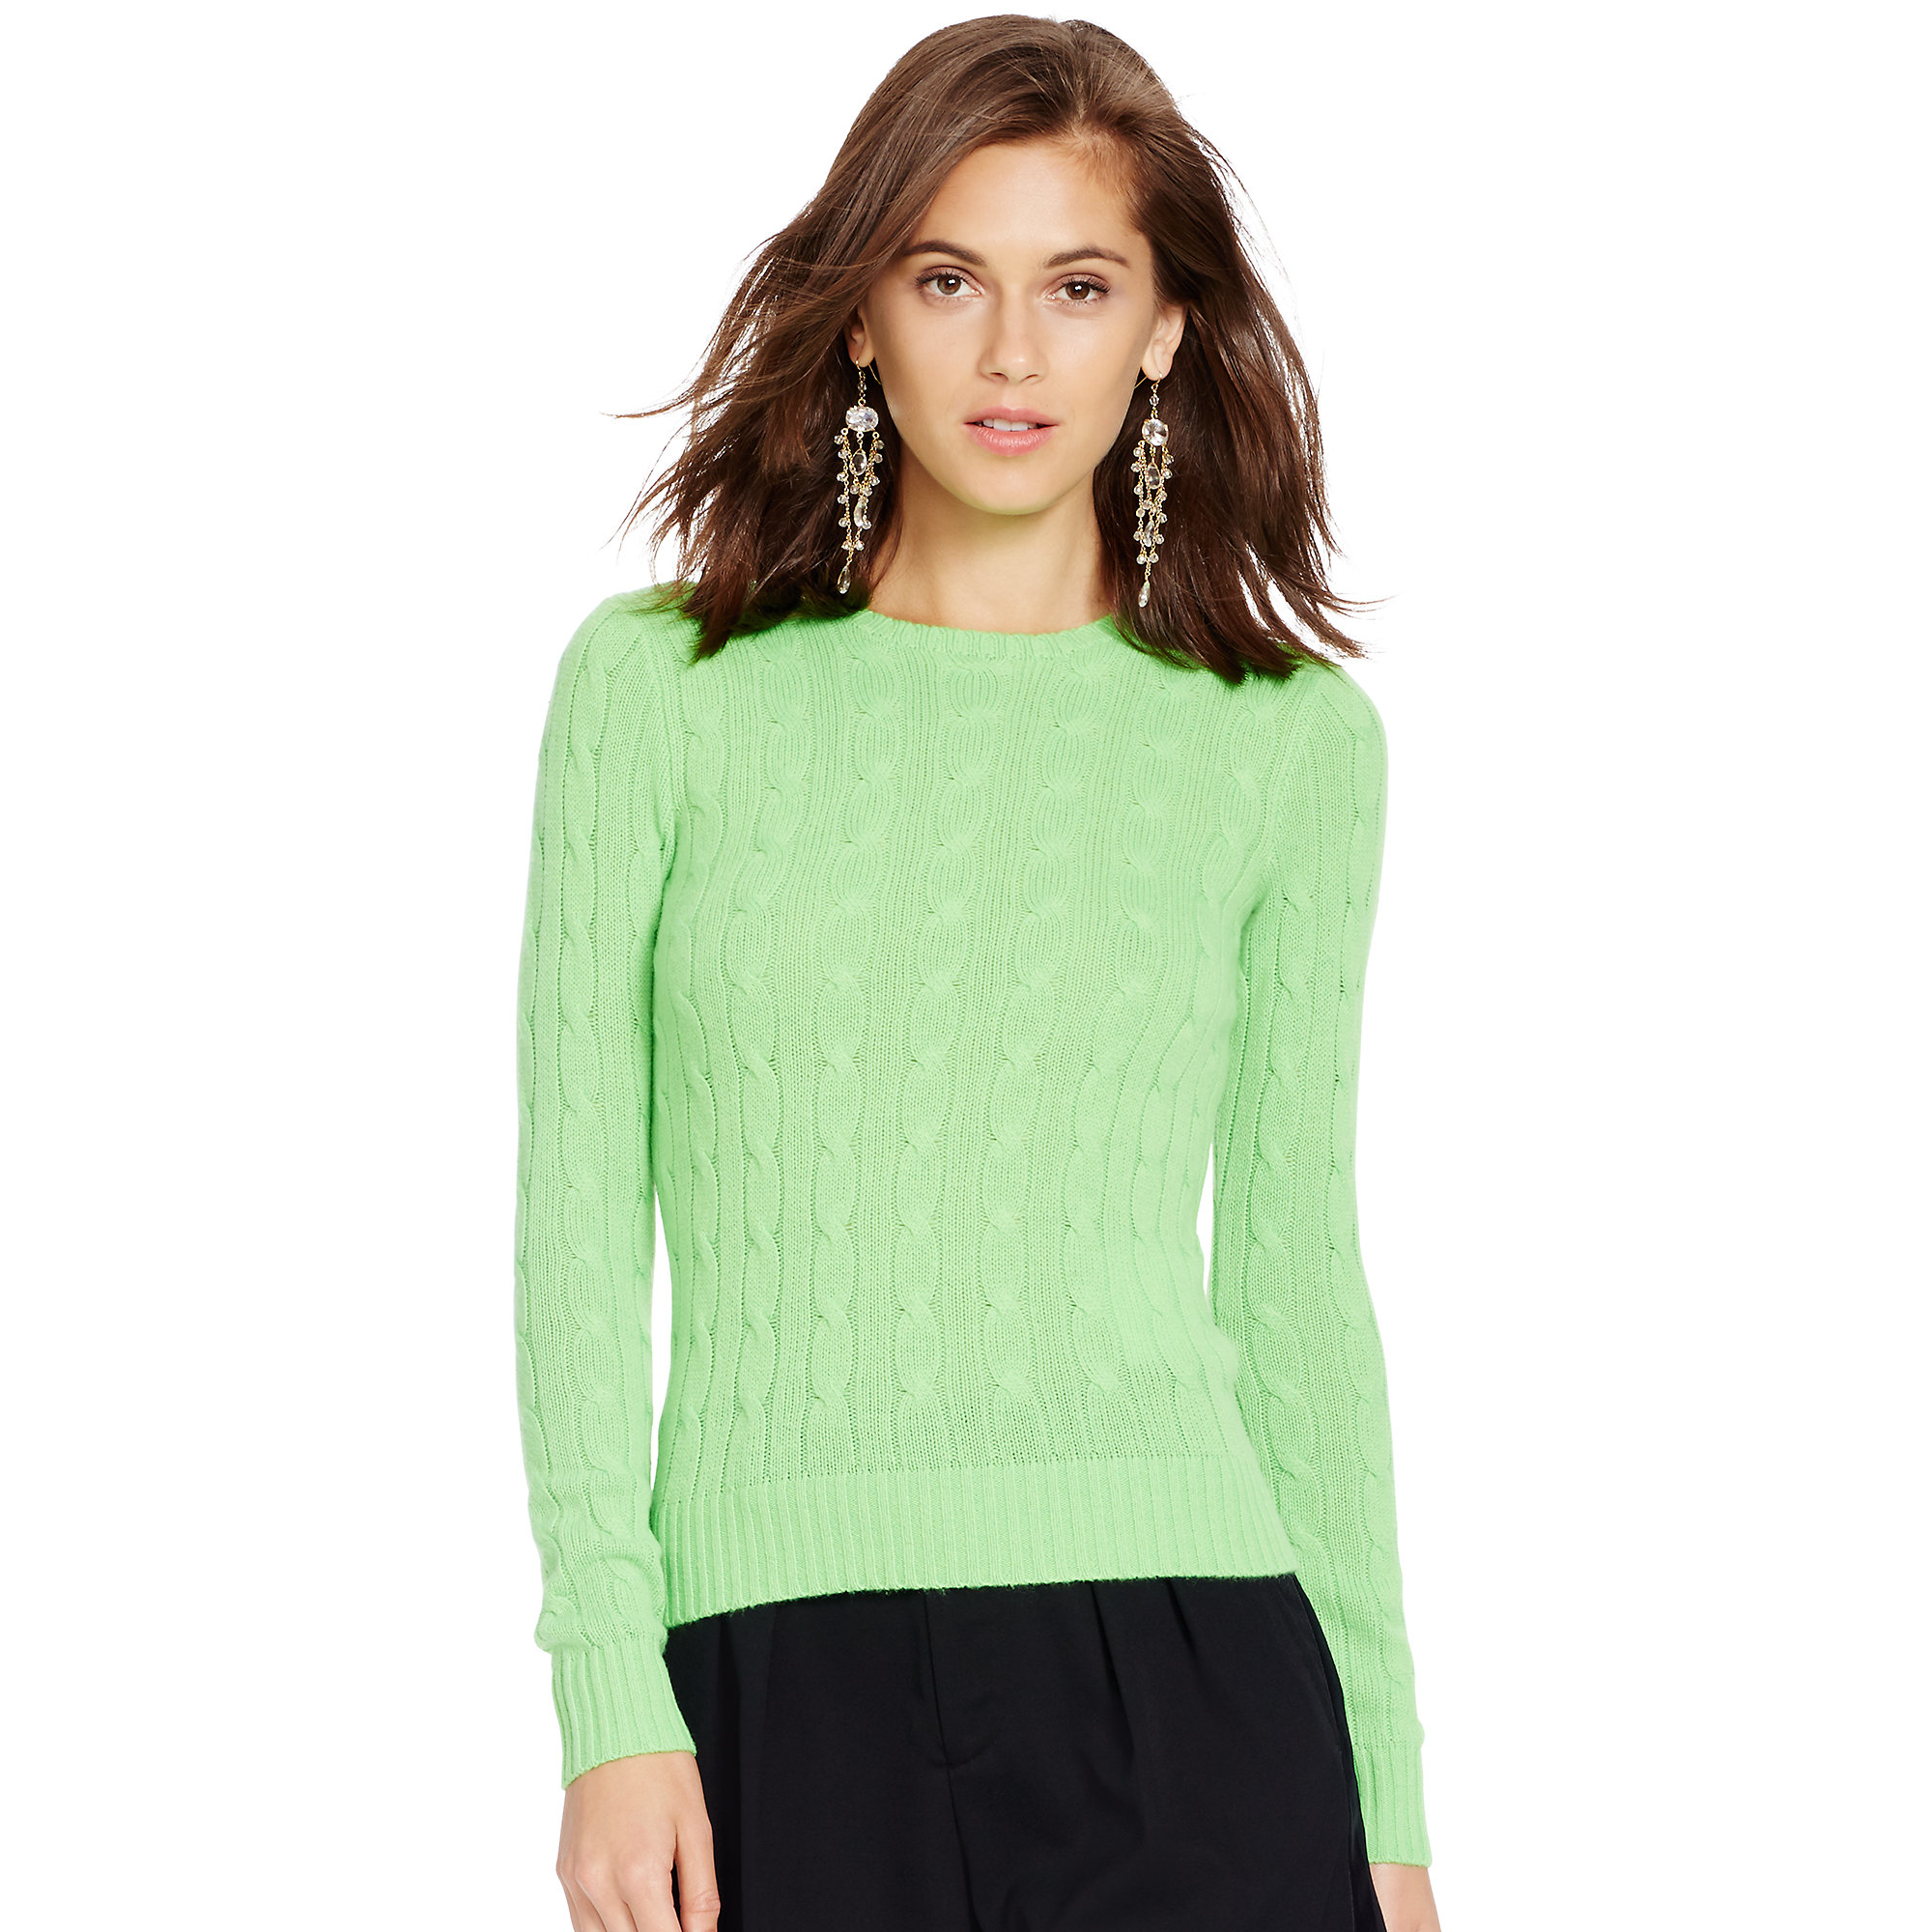 Polo ralph lauren Cable-knit Cashmere Sweater in Green | Lyst